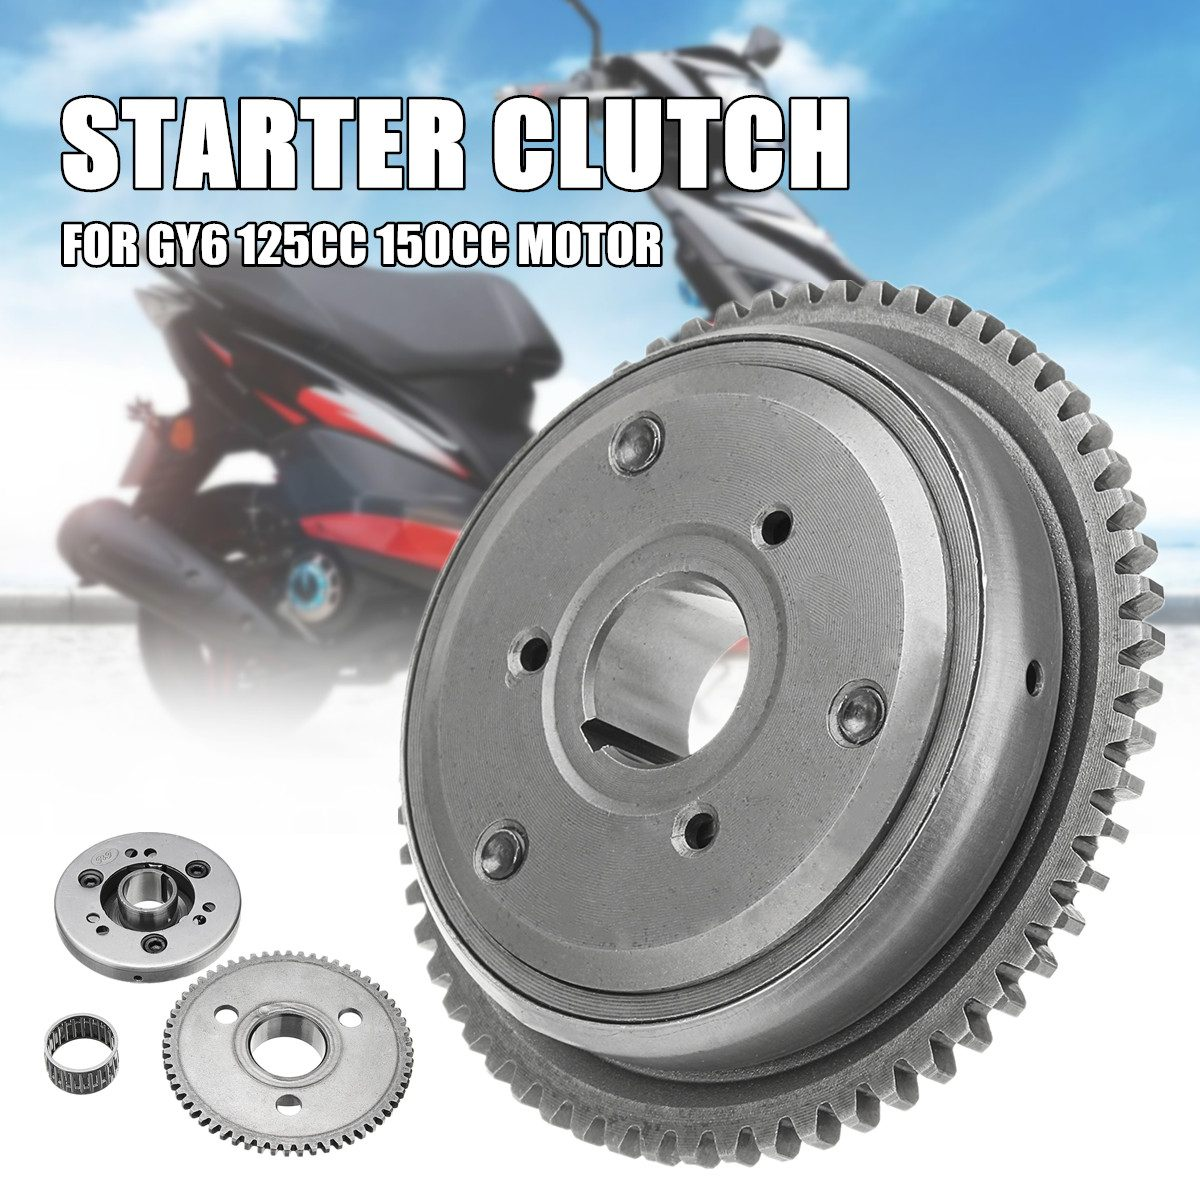 60 Tooth Gear Hight Performance Starter Clutch For Scooter Moped GY6 125cc  150cc Engine Motor Metal Motorcycyle Drive Clutch